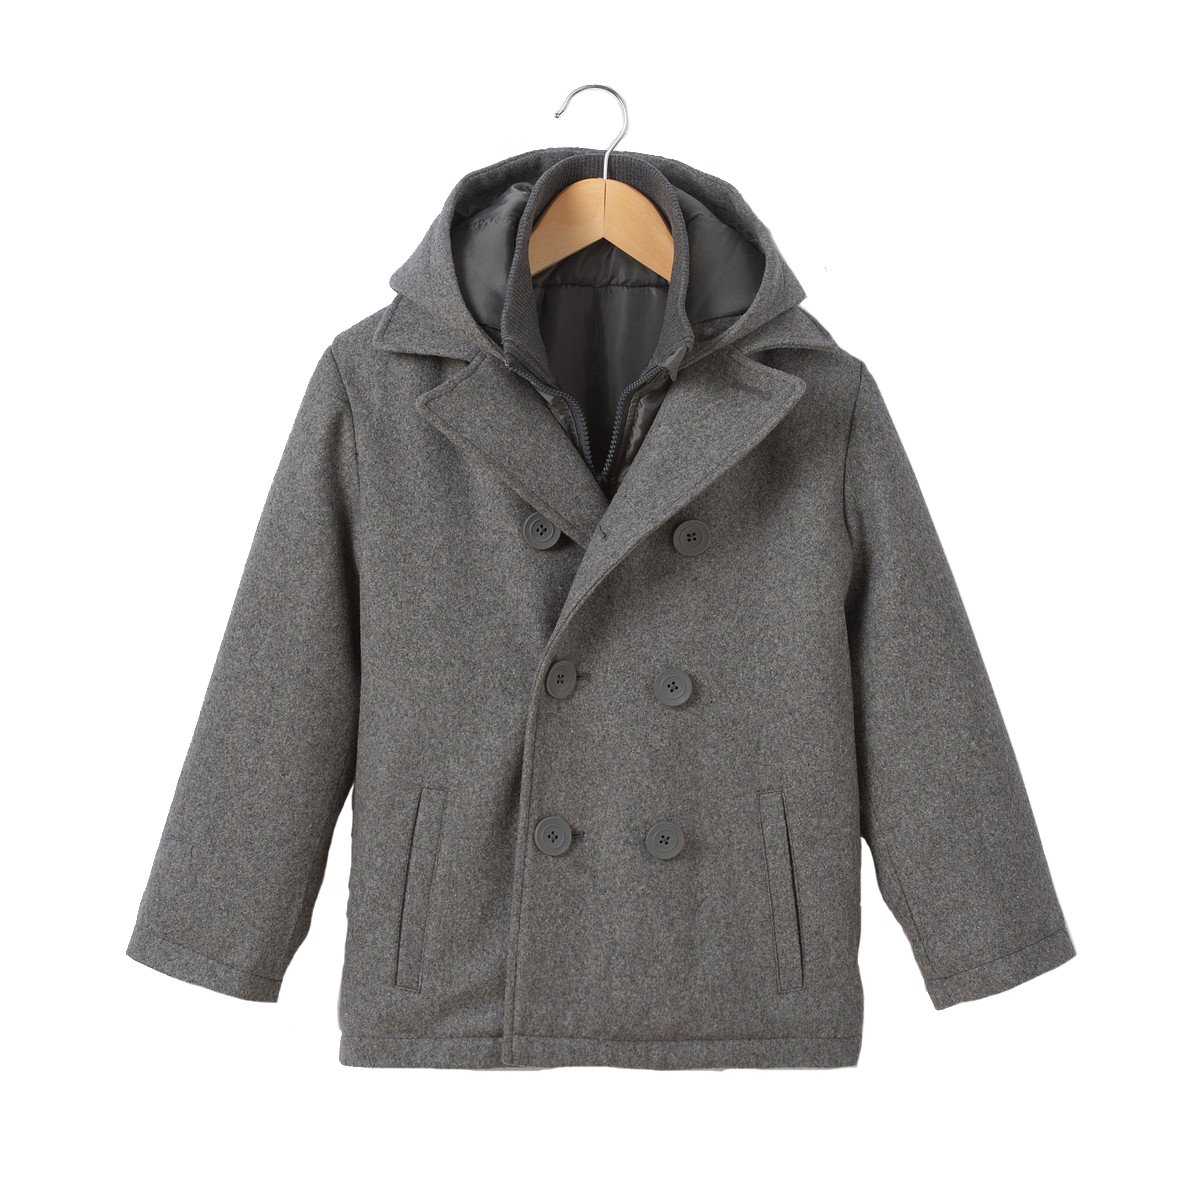 La Redoute Collections Big Boys Wool Mix Pea Coat, 3-12 Years Grey Size 4 Years - 40 in. 4946510-000-9046917-00102-1